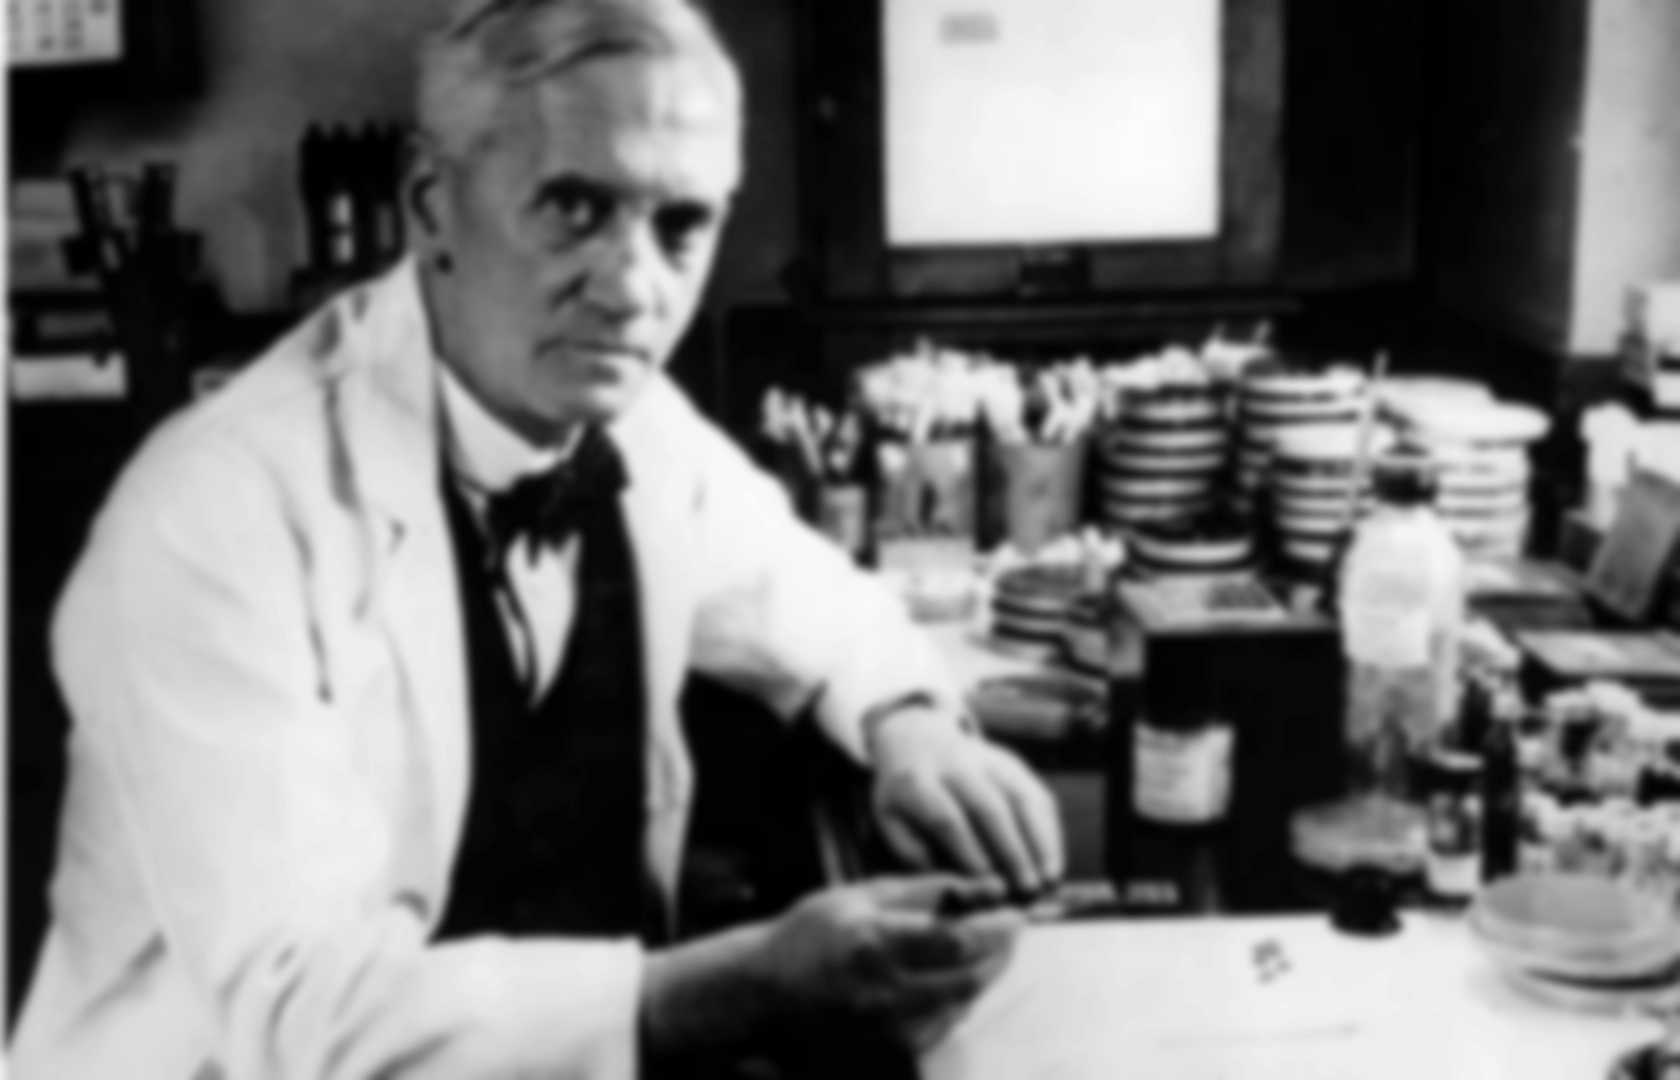 a biography of alexander fleming a scottish biologist pharmacologist and botanist Never neglect an extraordinary appearance or happening - alexander fleming sir alexander fleming (1881-1955) was a scottish biologist, pharmacologist and botanist he wrote many articles on bacteriology, immunology, and chemotherapy his best-known discoveries are the enzyme lysozyme.